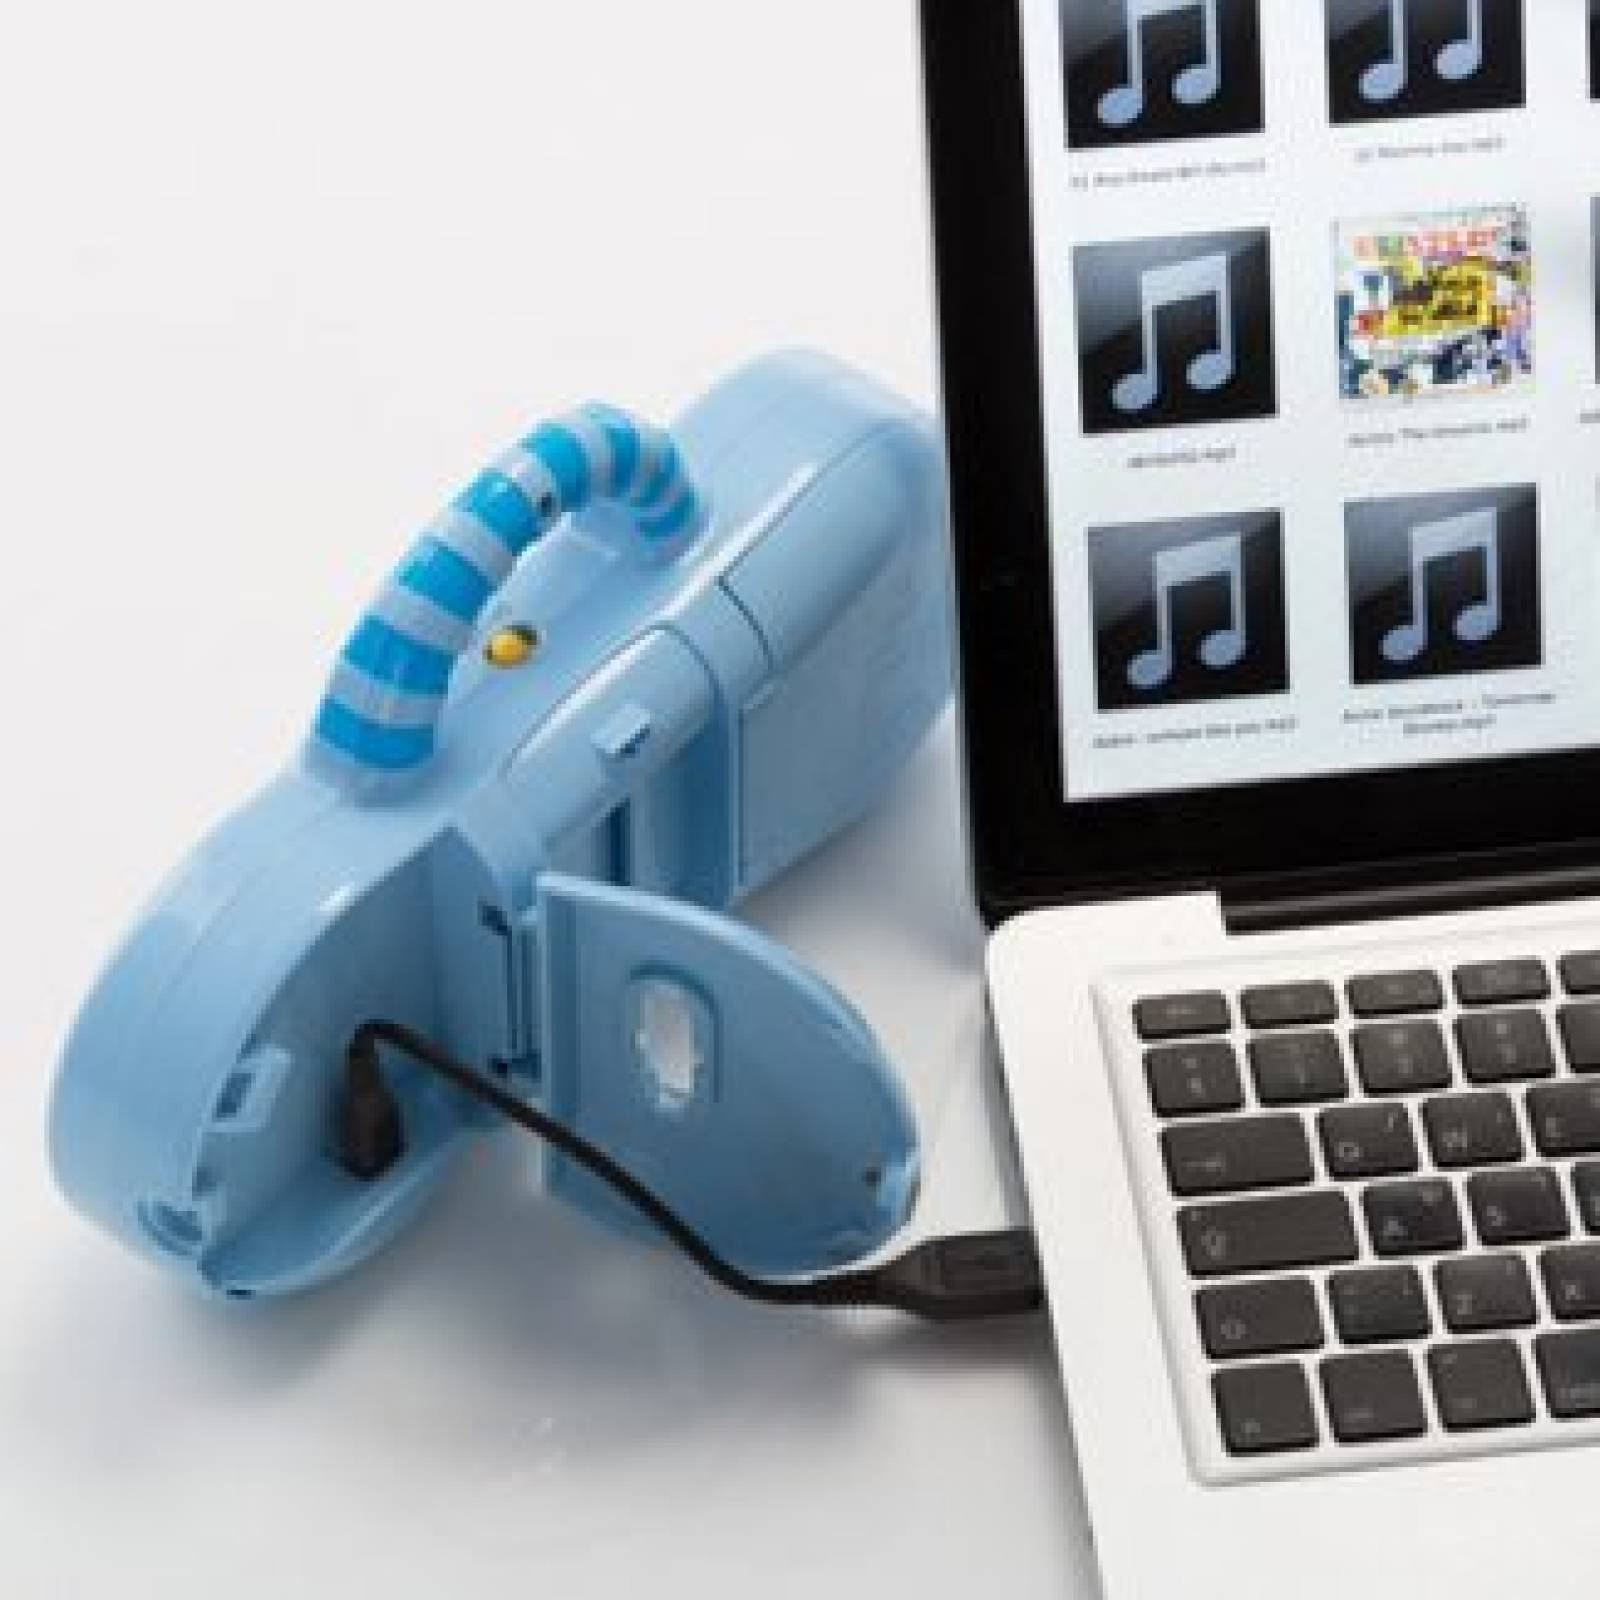 MP3 Stereo Owl Mobile By Taf Toys 0+ thumbnails